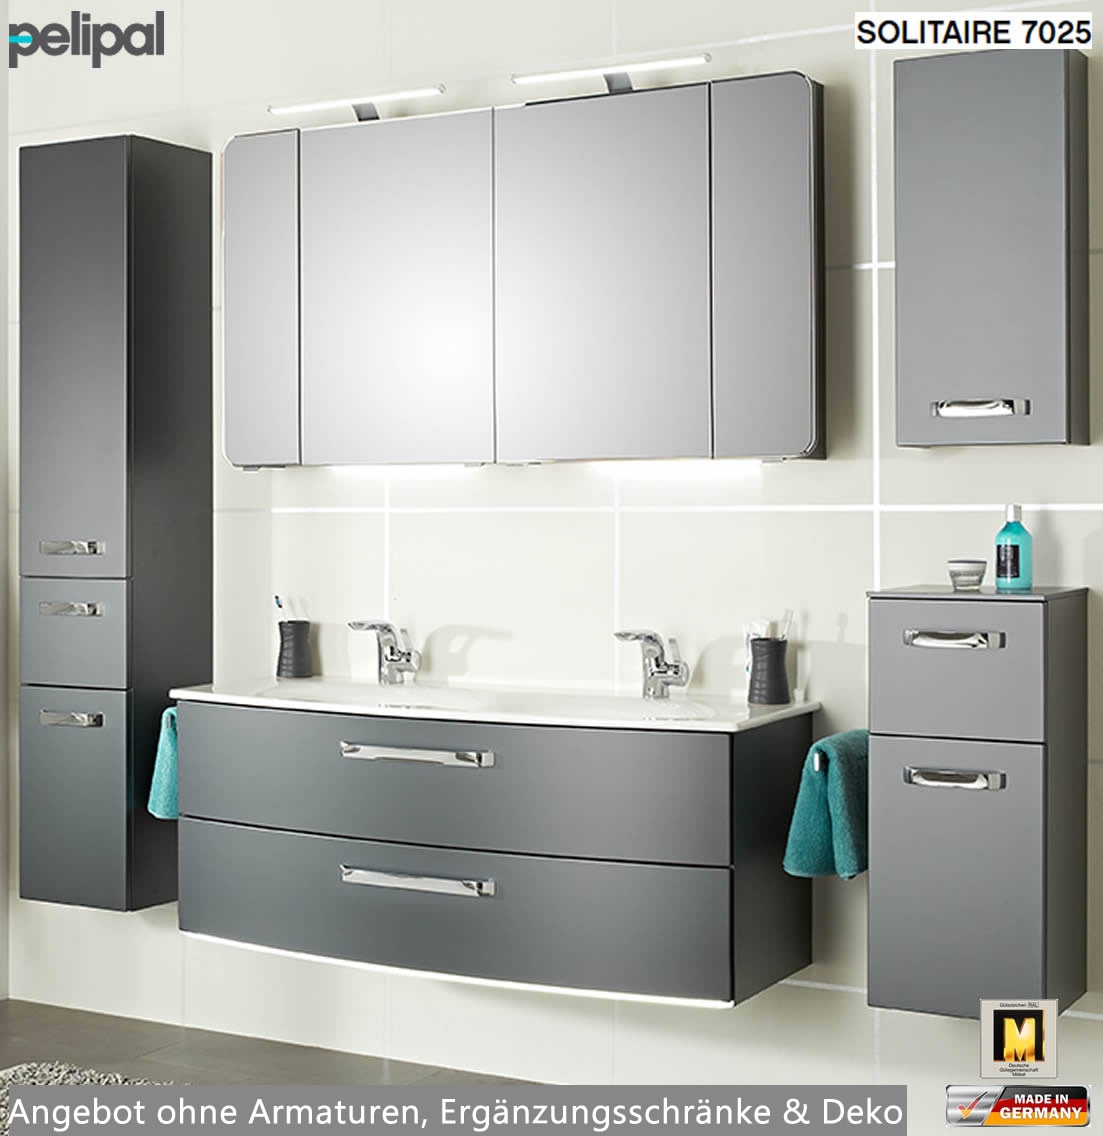 pelipal solitaire 7025 badm bel set mit 1220 mm. Black Bedroom Furniture Sets. Home Design Ideas